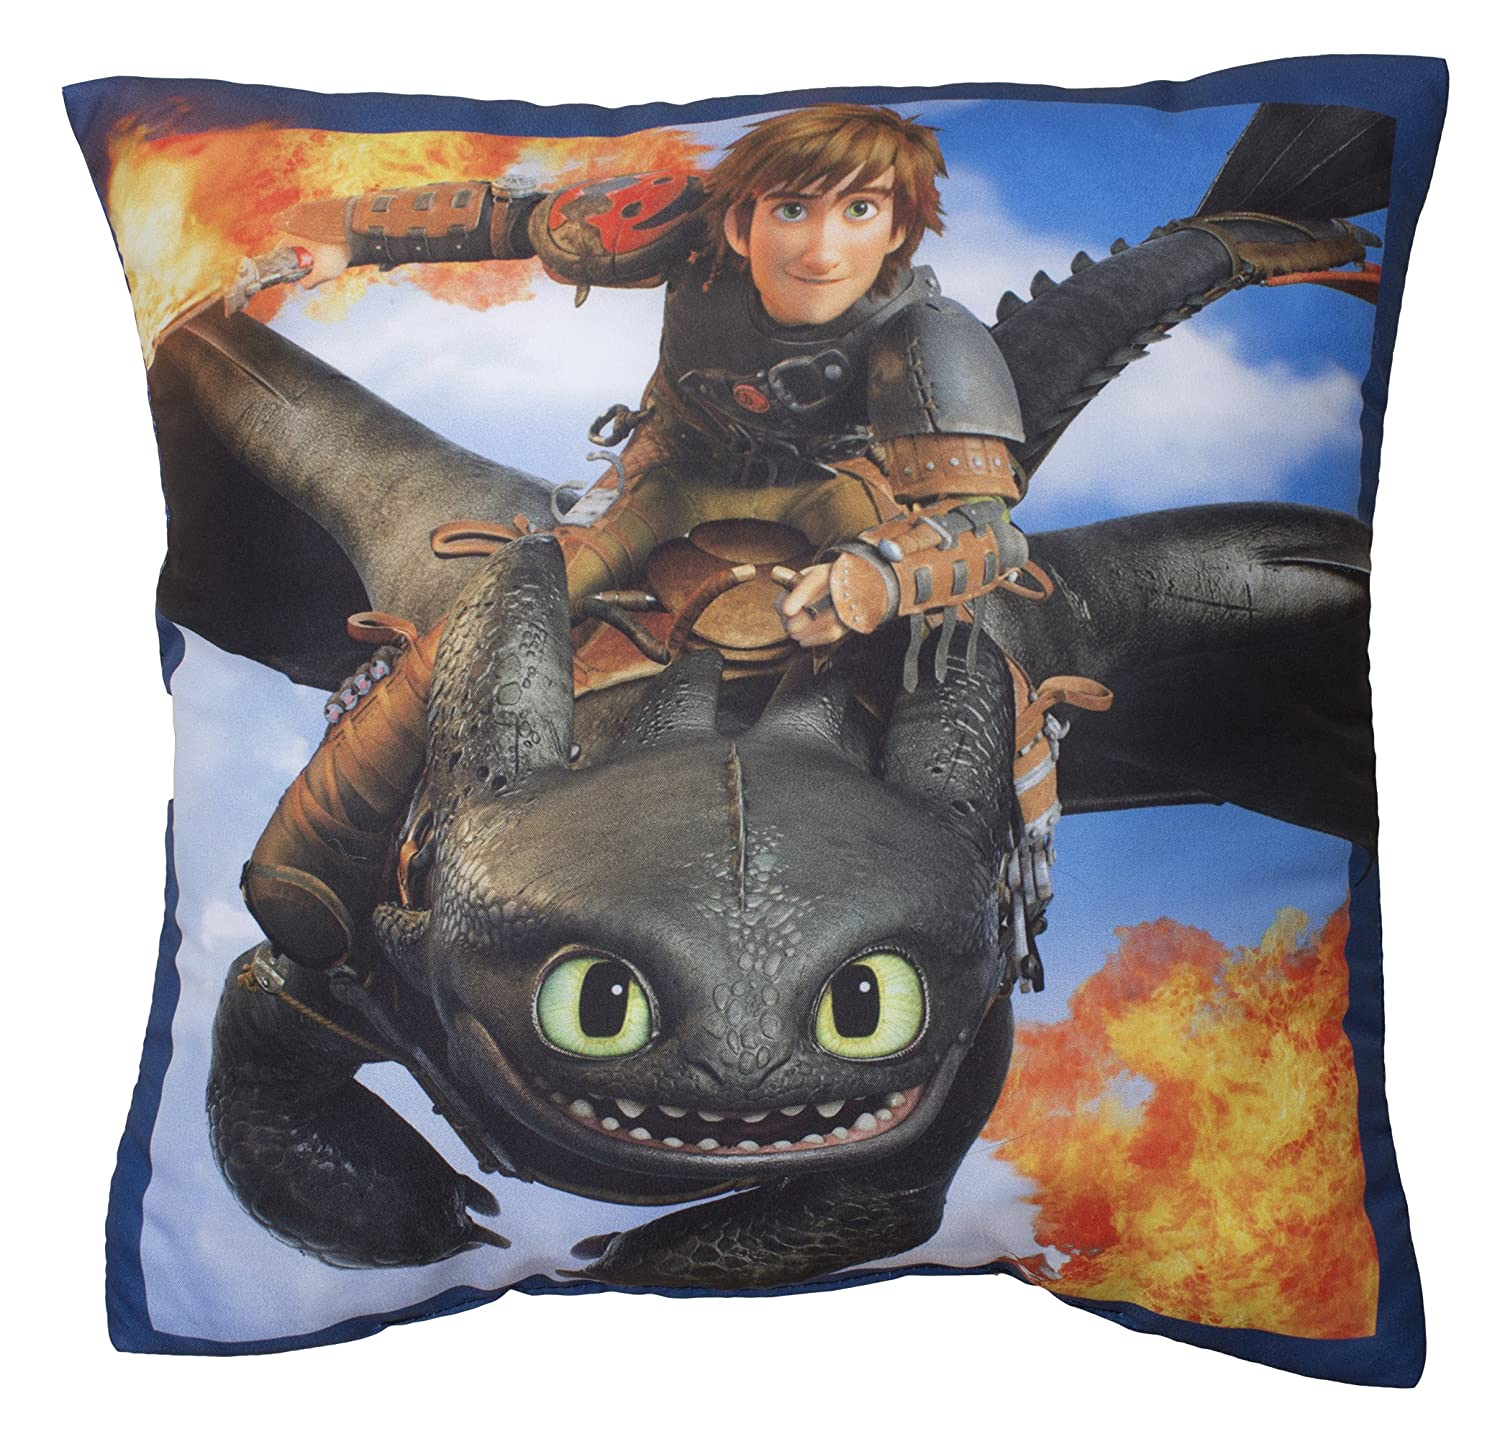 Toothless Dragon Blanket Dragons Toothless Cushion